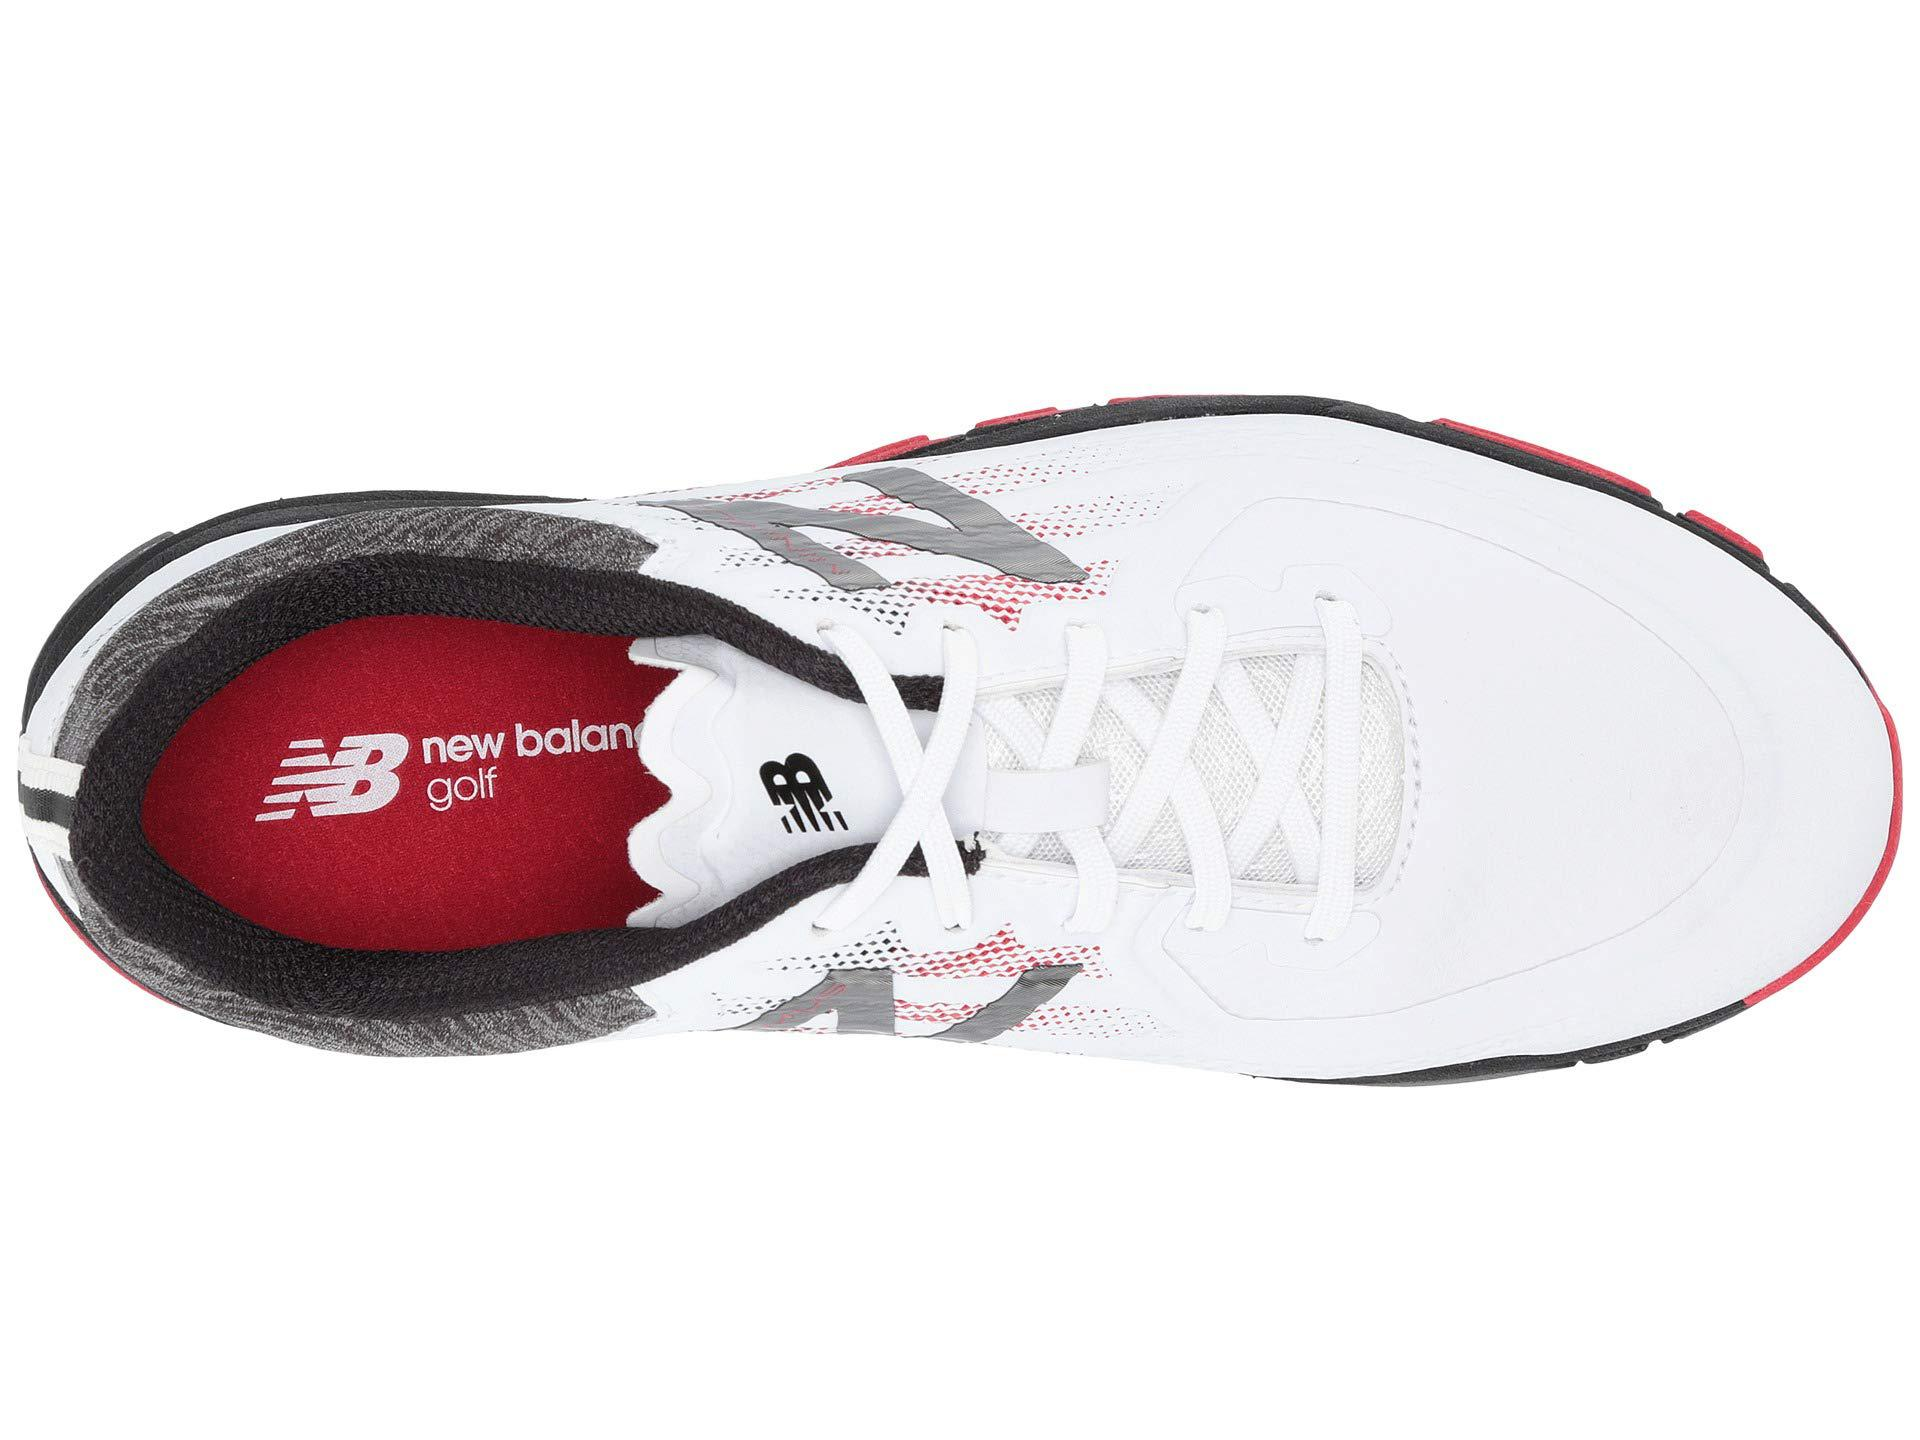 New Balance - Nbg1007 Minimus Tour (white red black) Men s Golf Shoes. View  fullscreen 0b8cfca7210